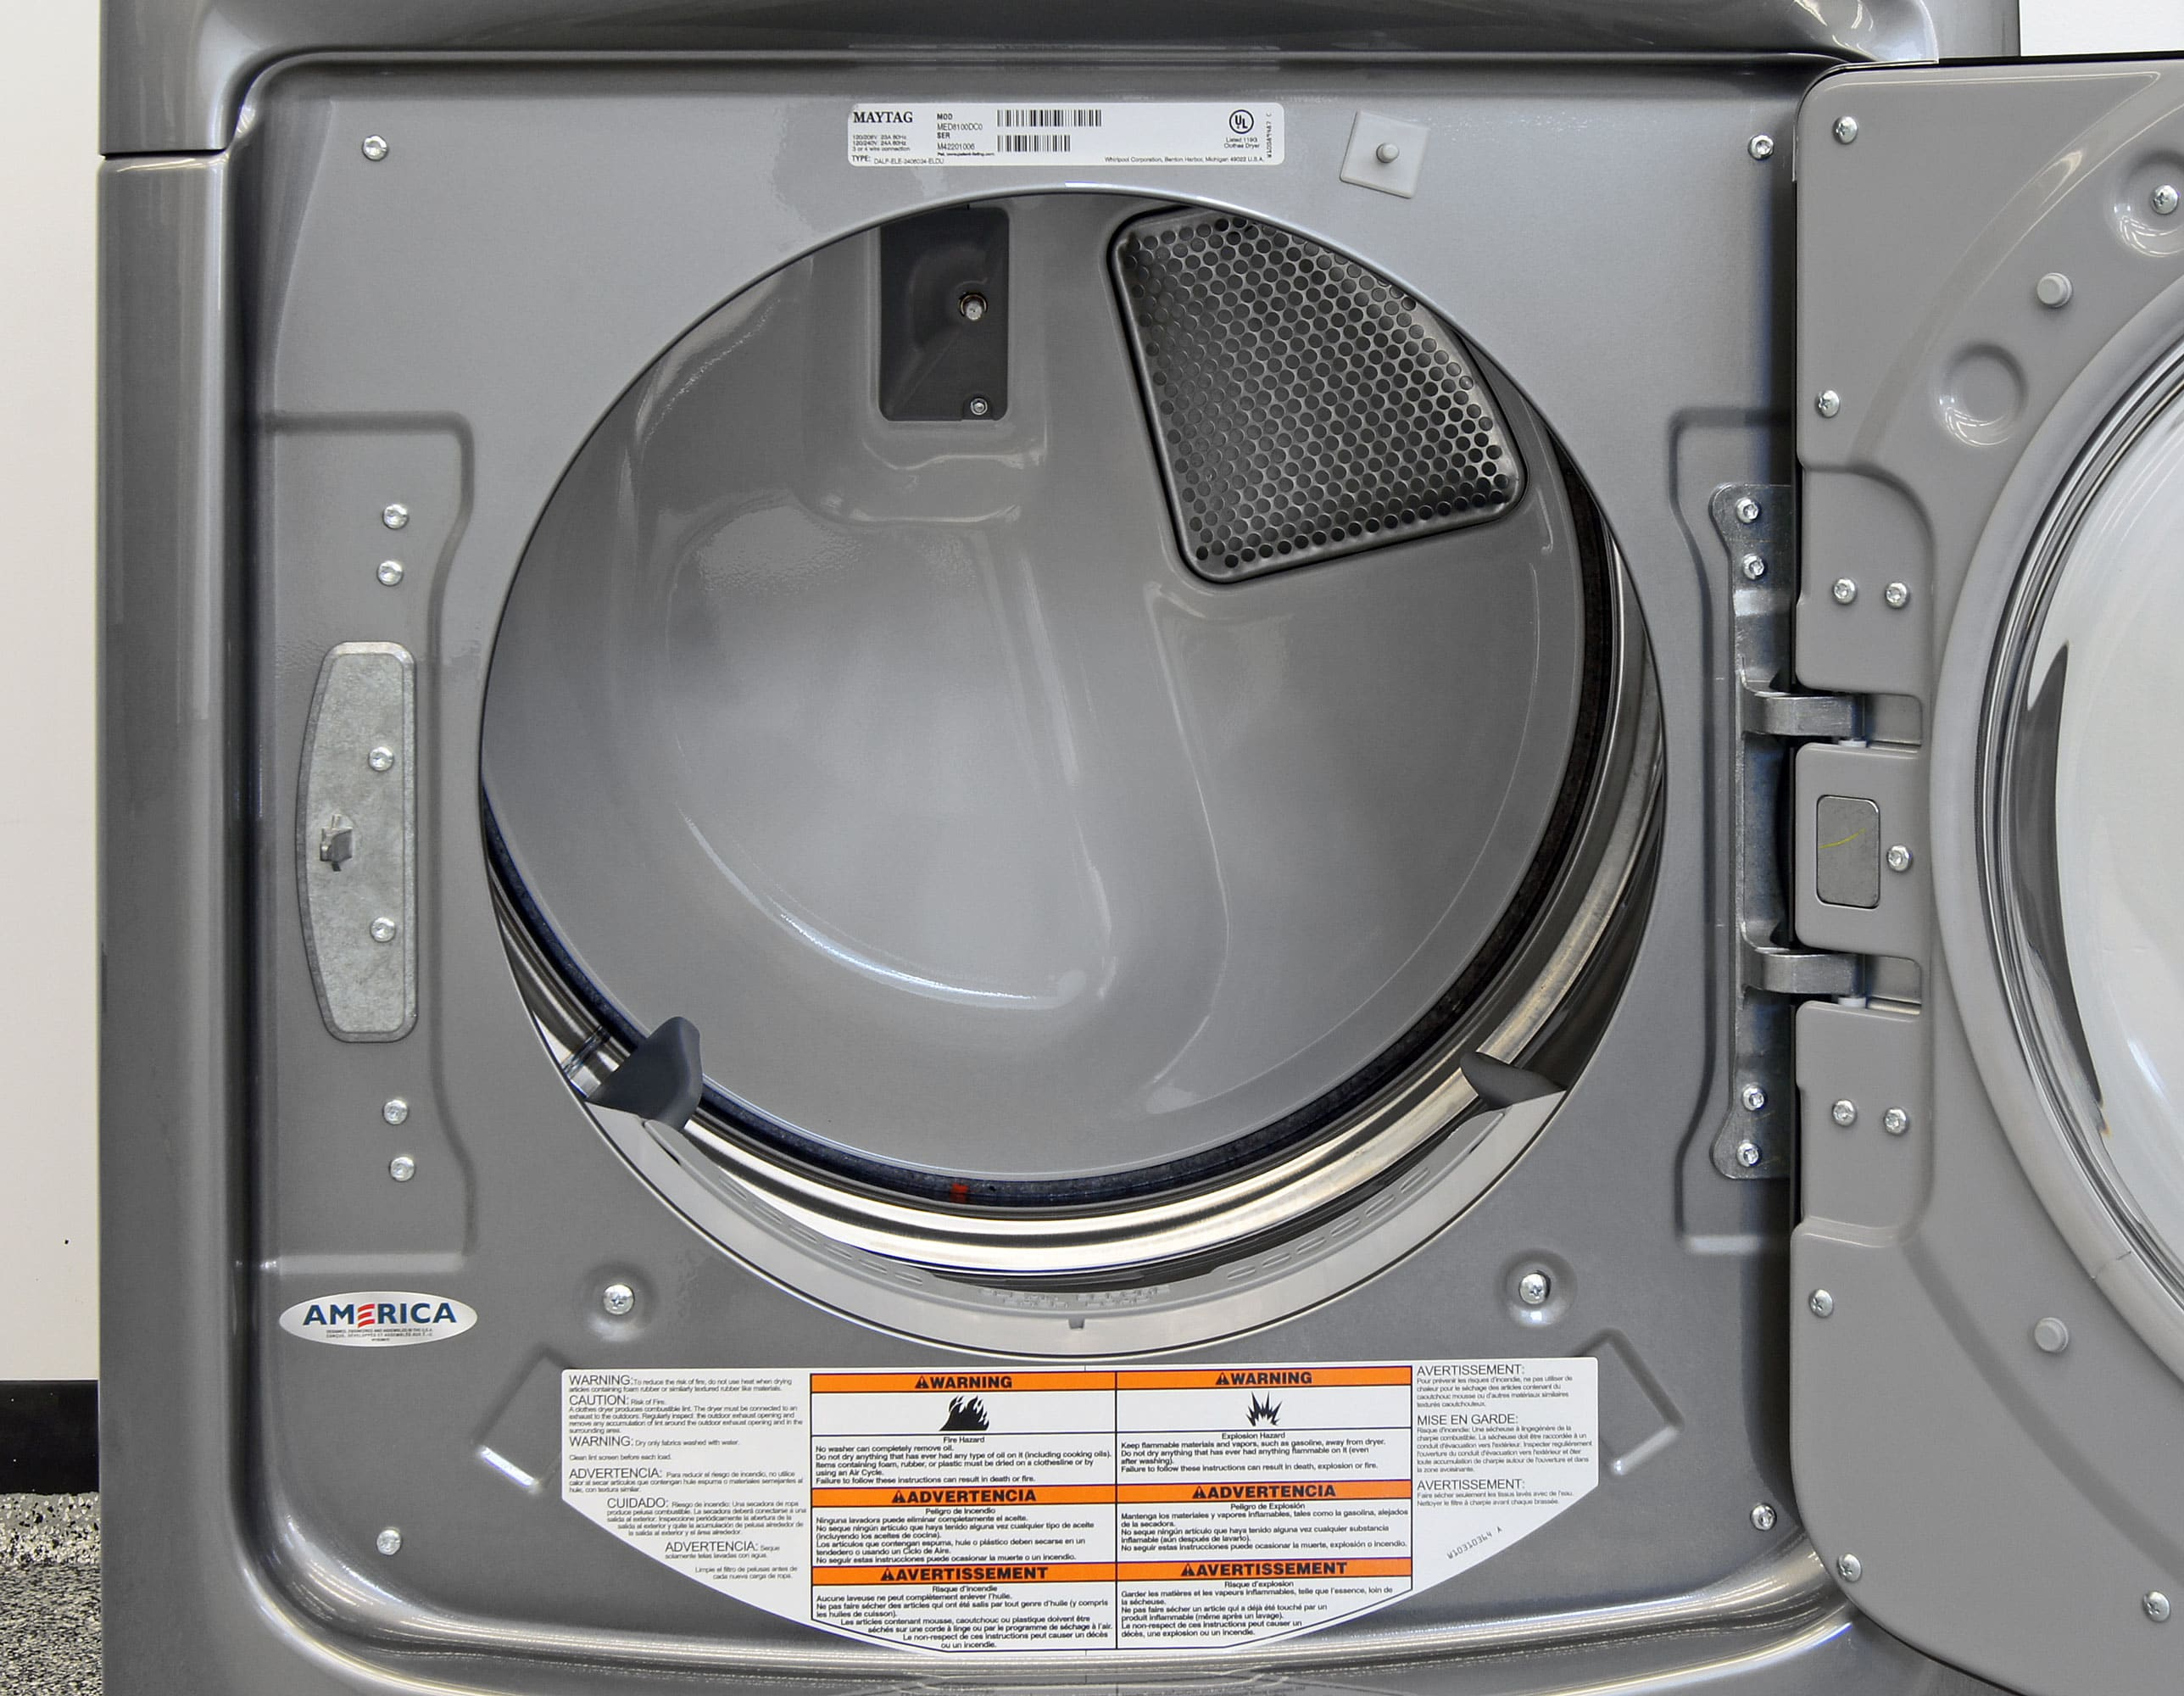 maytag maxima med8100dc dryer review laundry. Black Bedroom Furniture Sets. Home Design Ideas